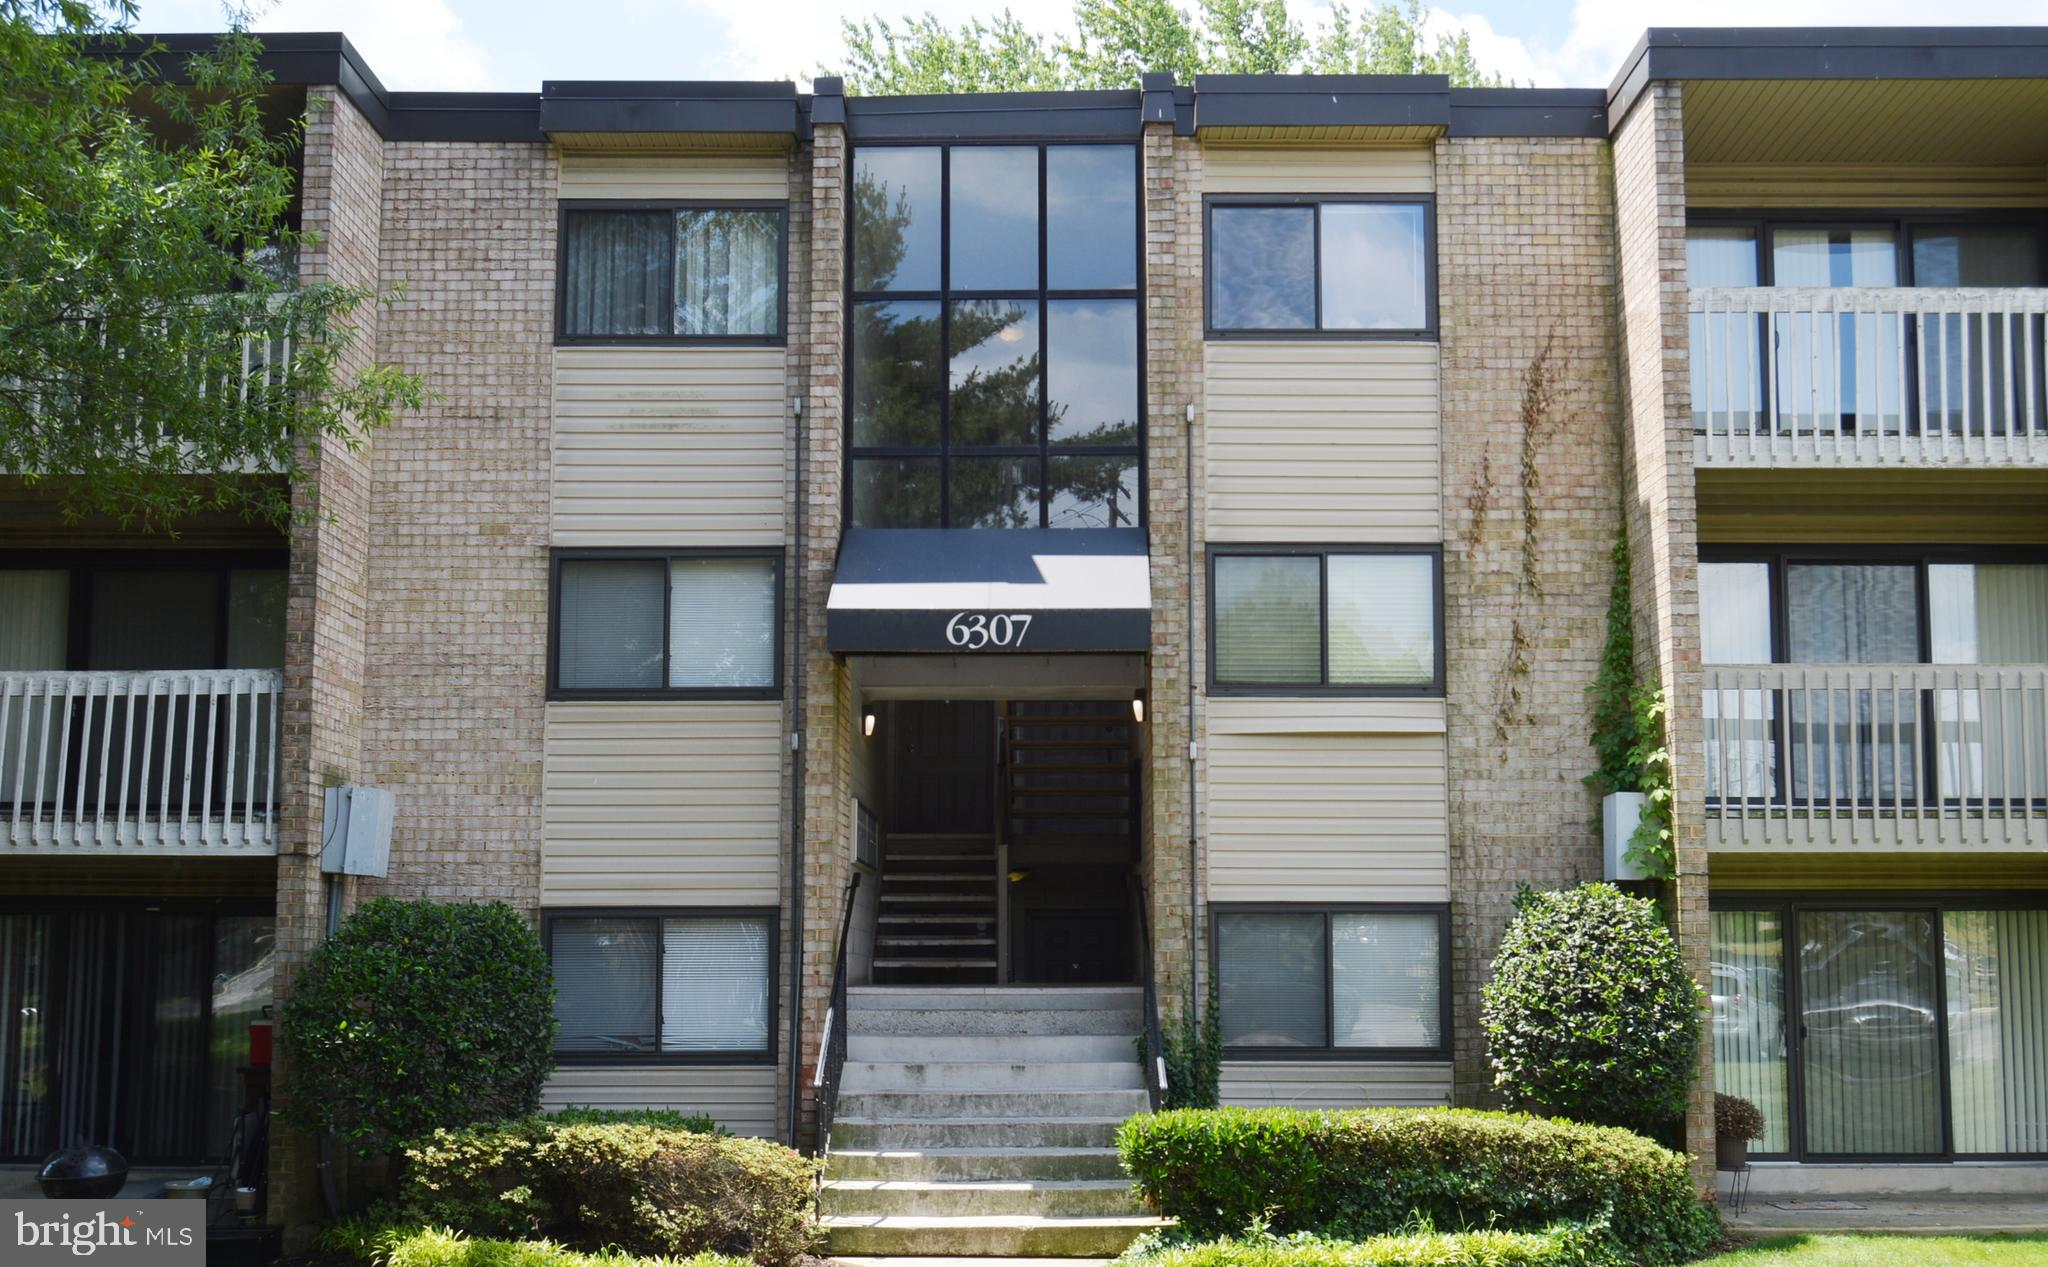 Spacious and bright upper level unit with covered balcony.    Just spruced up for easy move. New pai